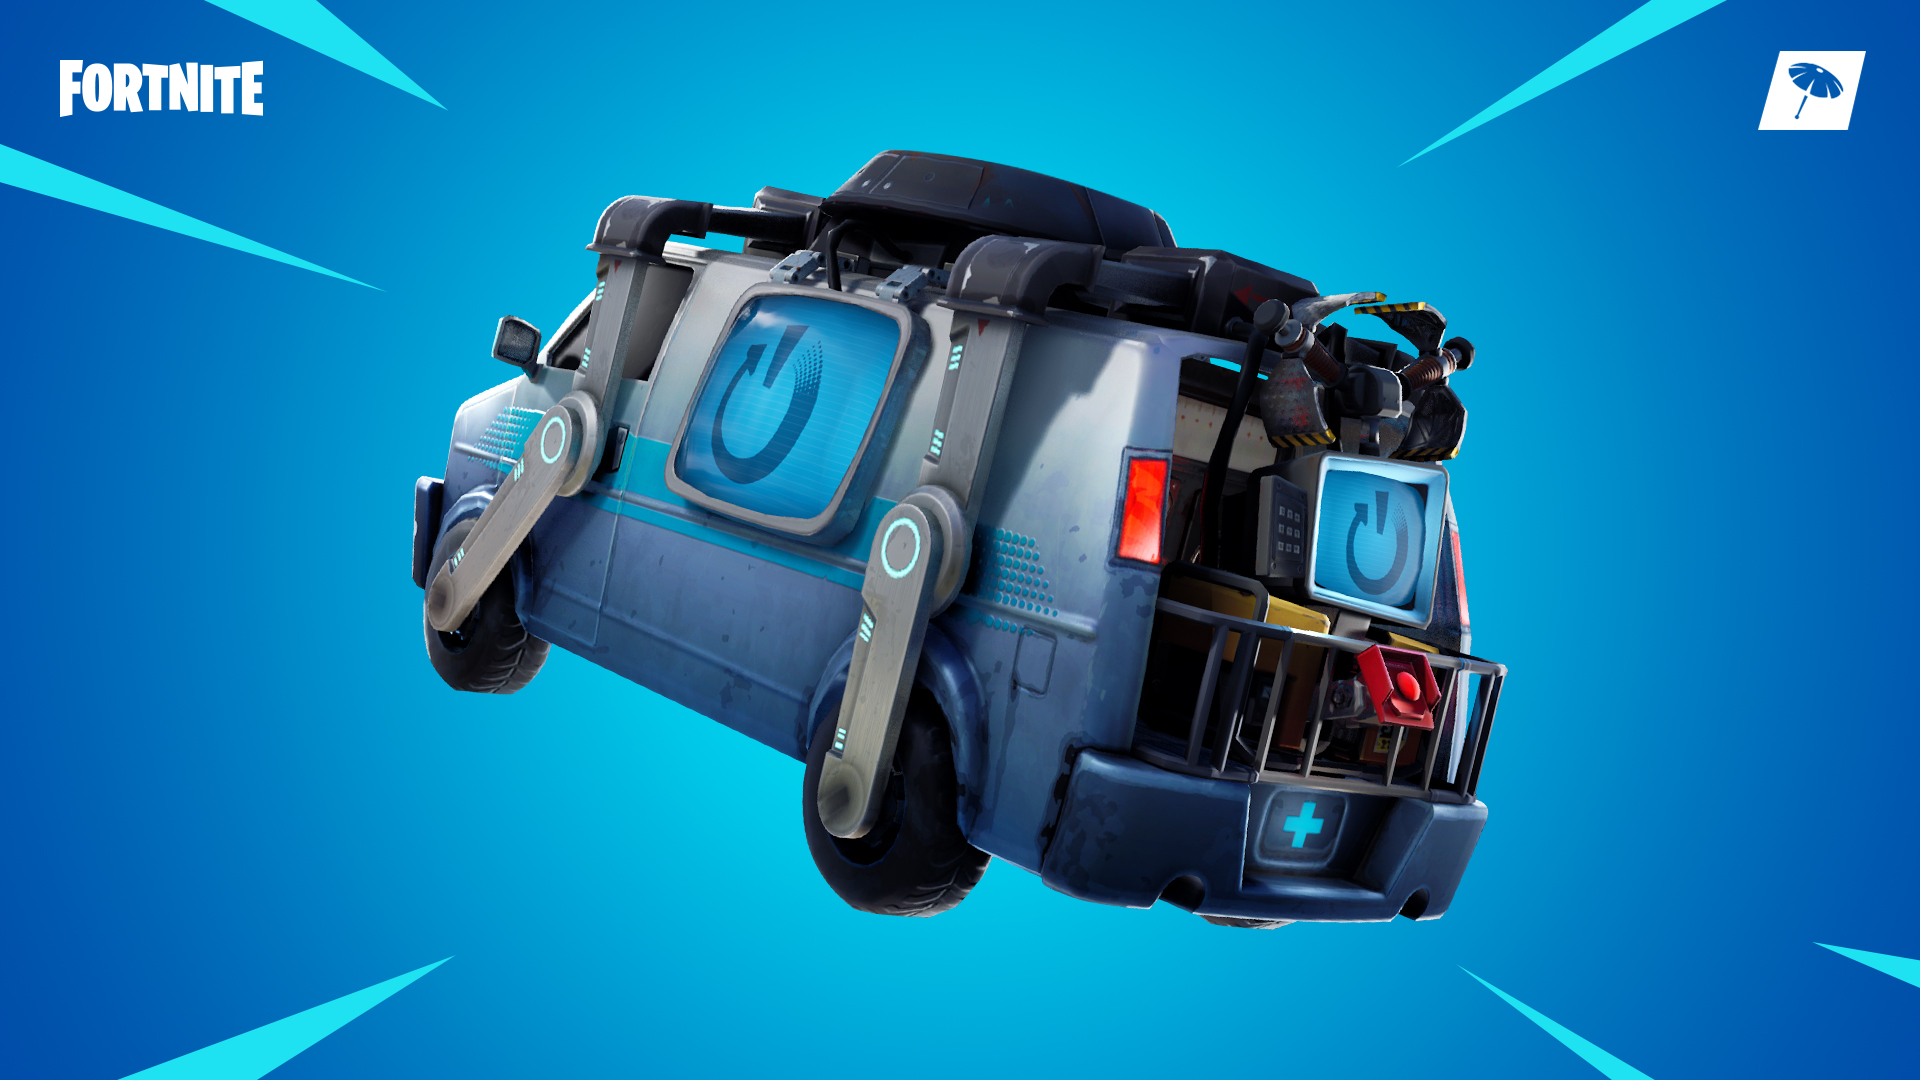 Photo of Fortnite 8.30 Official Patch Notes Revealed, Reboot Vans, Fly Explosives LTM